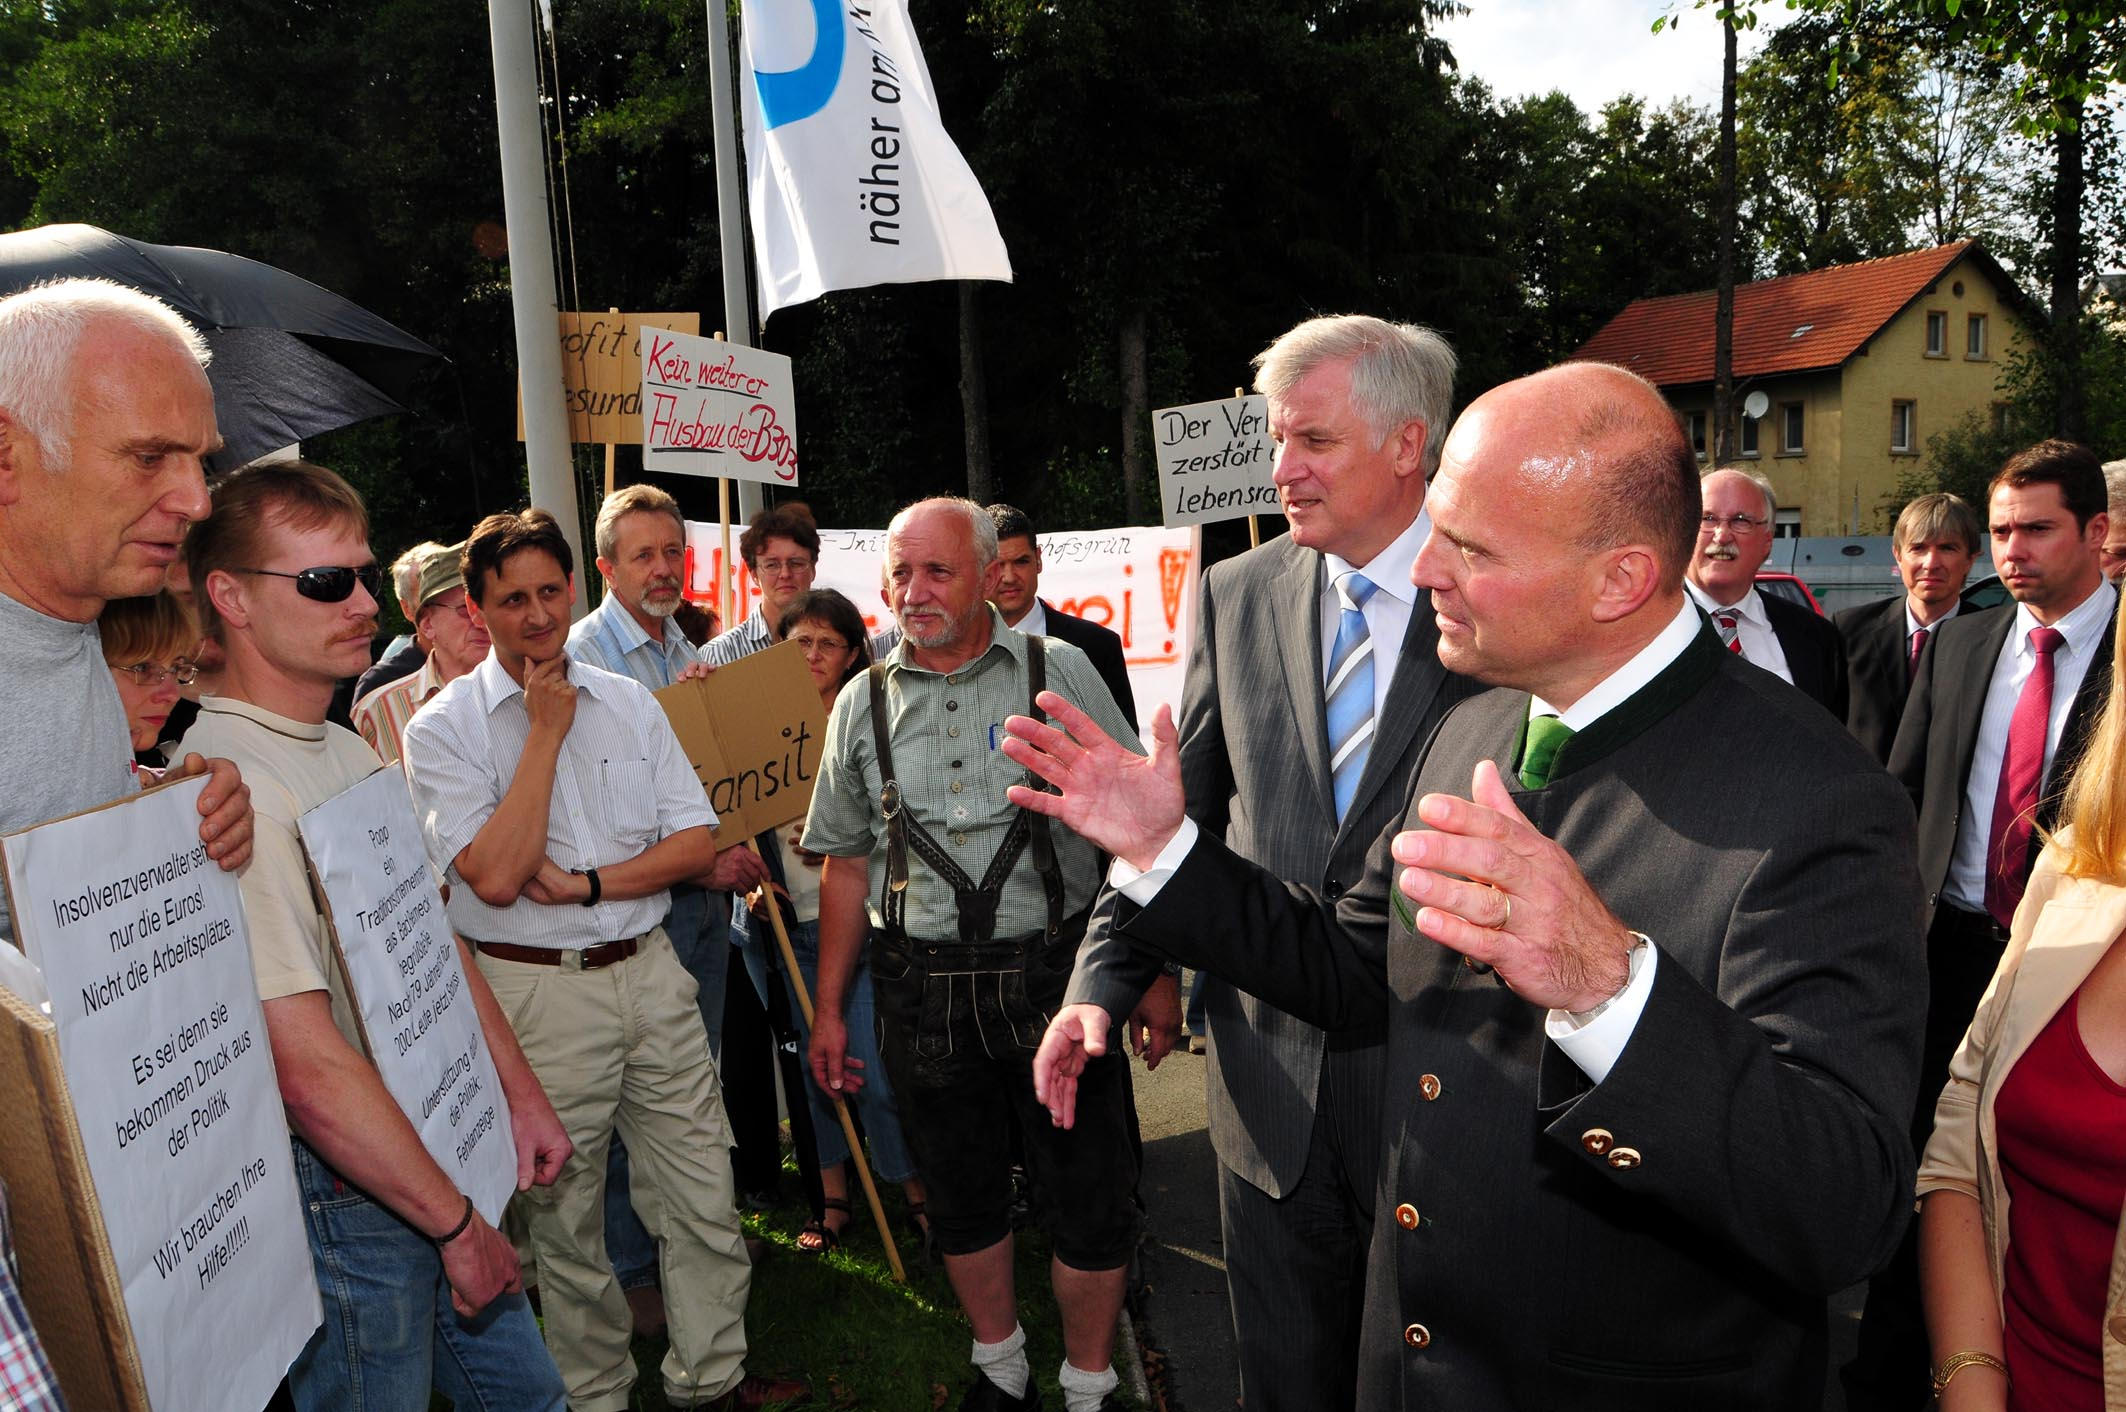 090821 Seehofer in Warmensteinach jpg. (41)